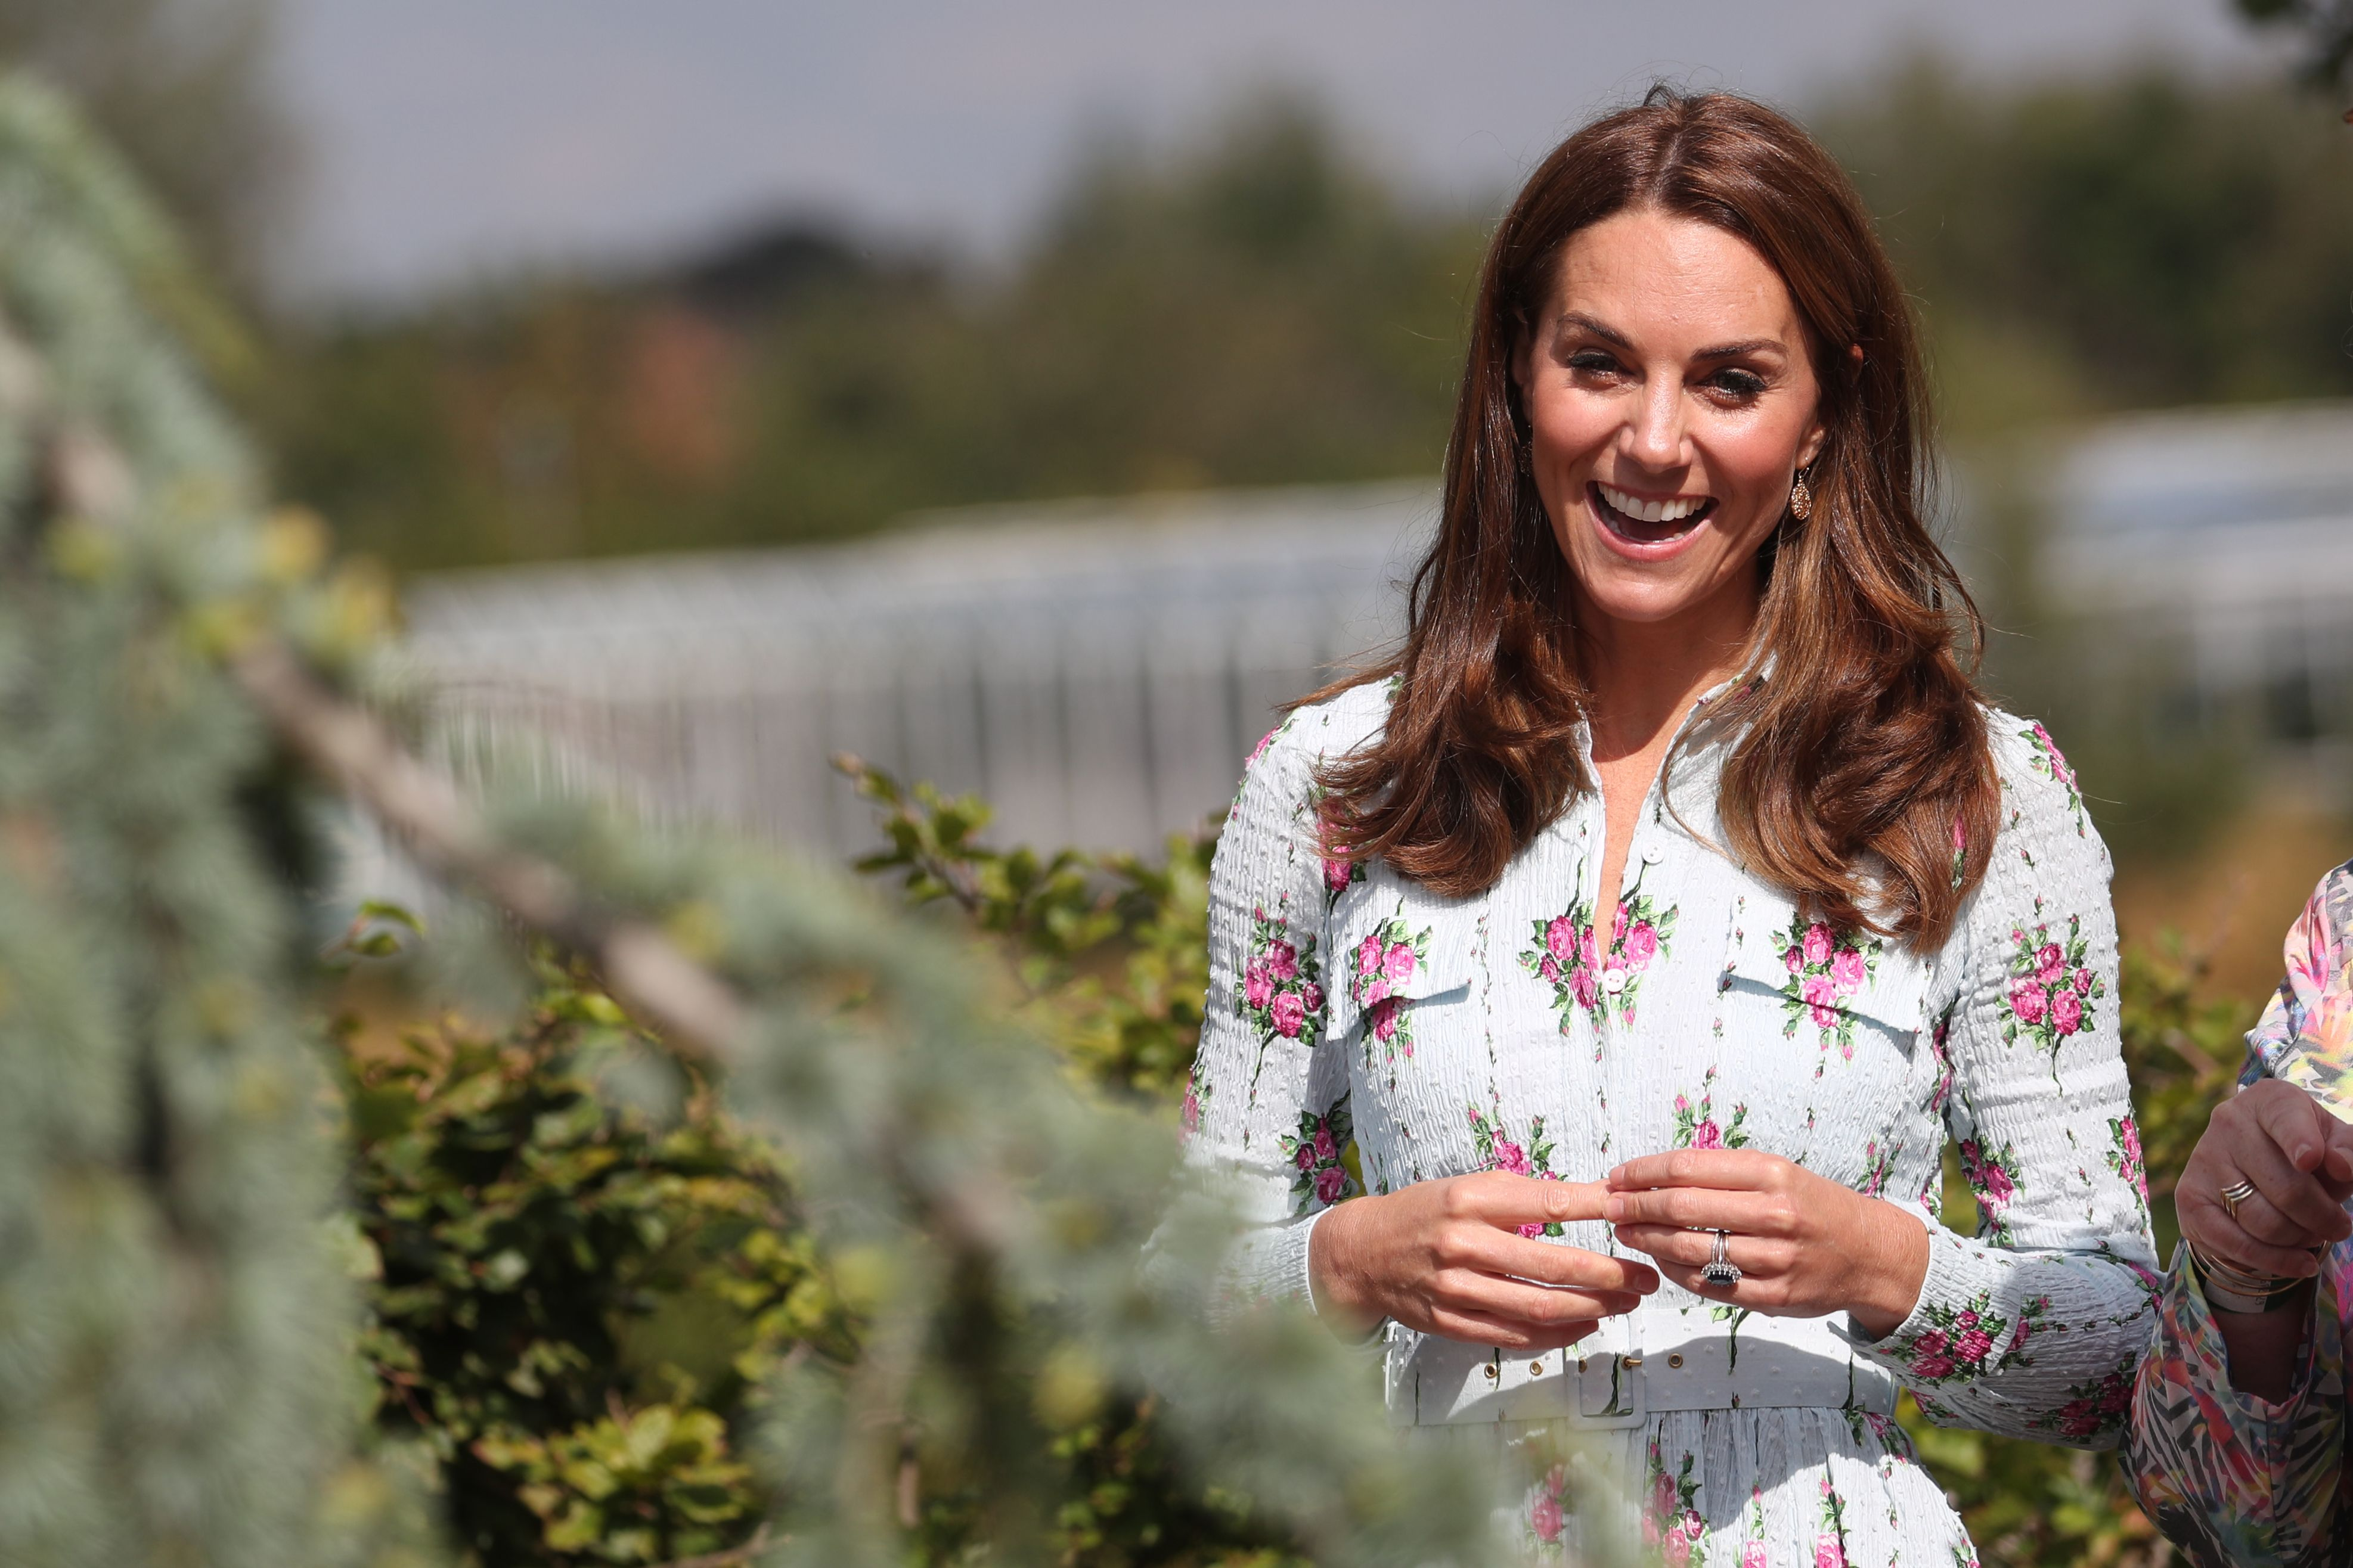 Kate Middleton Makes a Surprise Work Appearance in a Floral Emilia Wickstead Dress